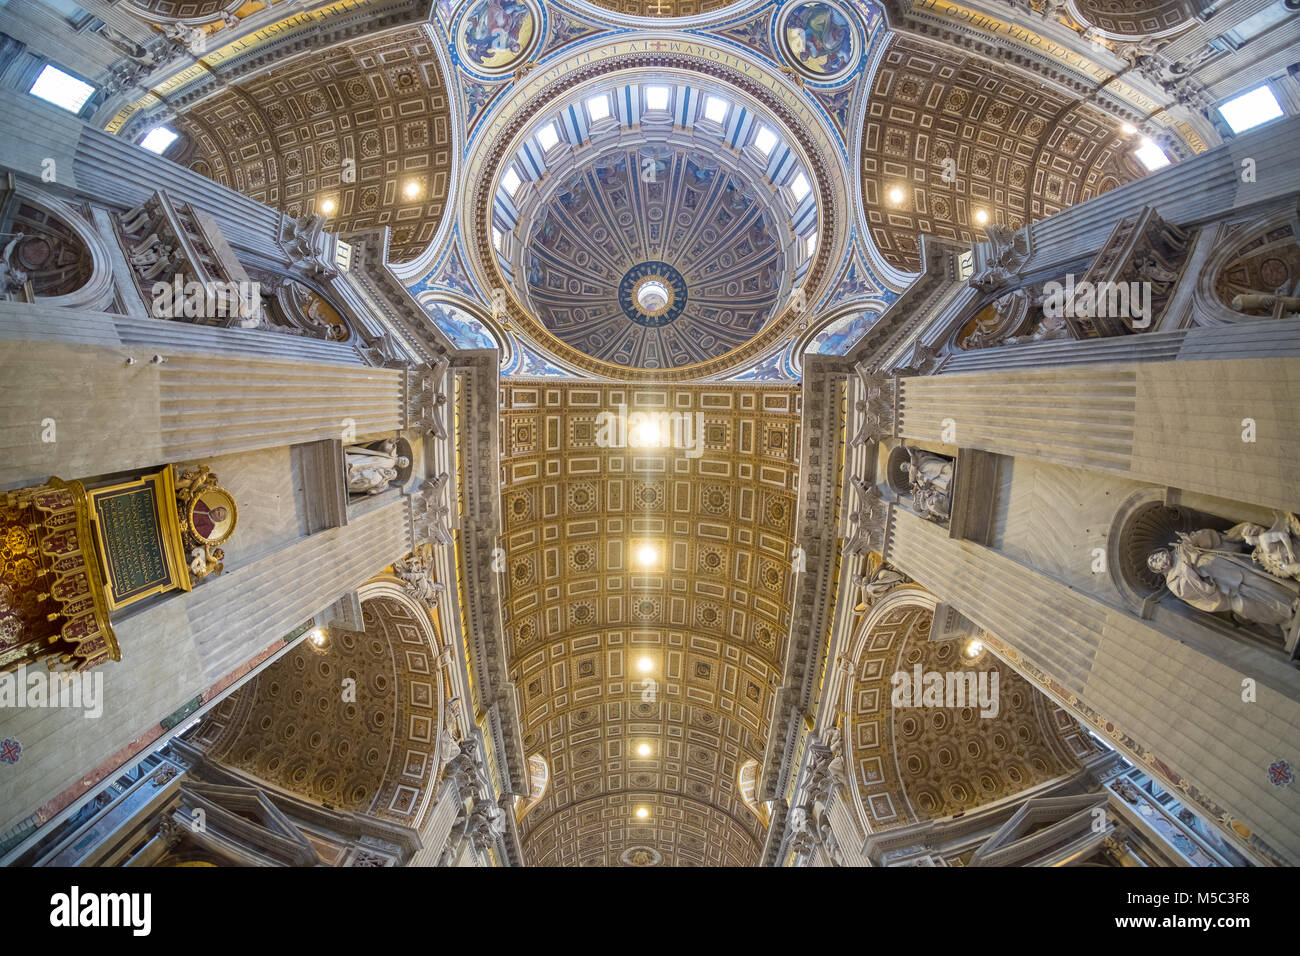 St. Peter's Basilica dome interior in Rome, Italy - Stock Image